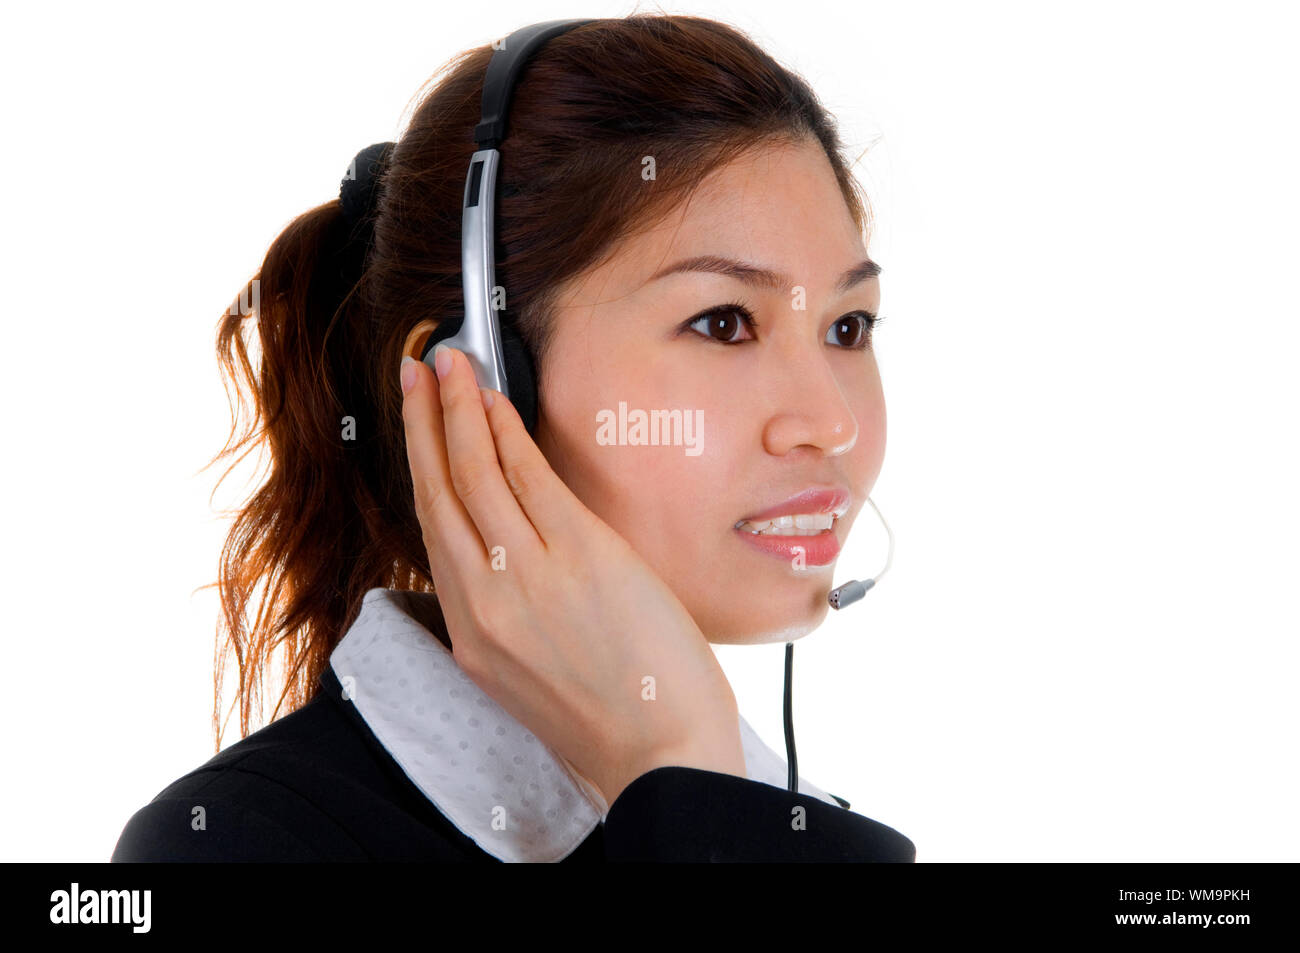 Friendly Customer Representative with headset smiling during a telephone conversation. Stock Photo